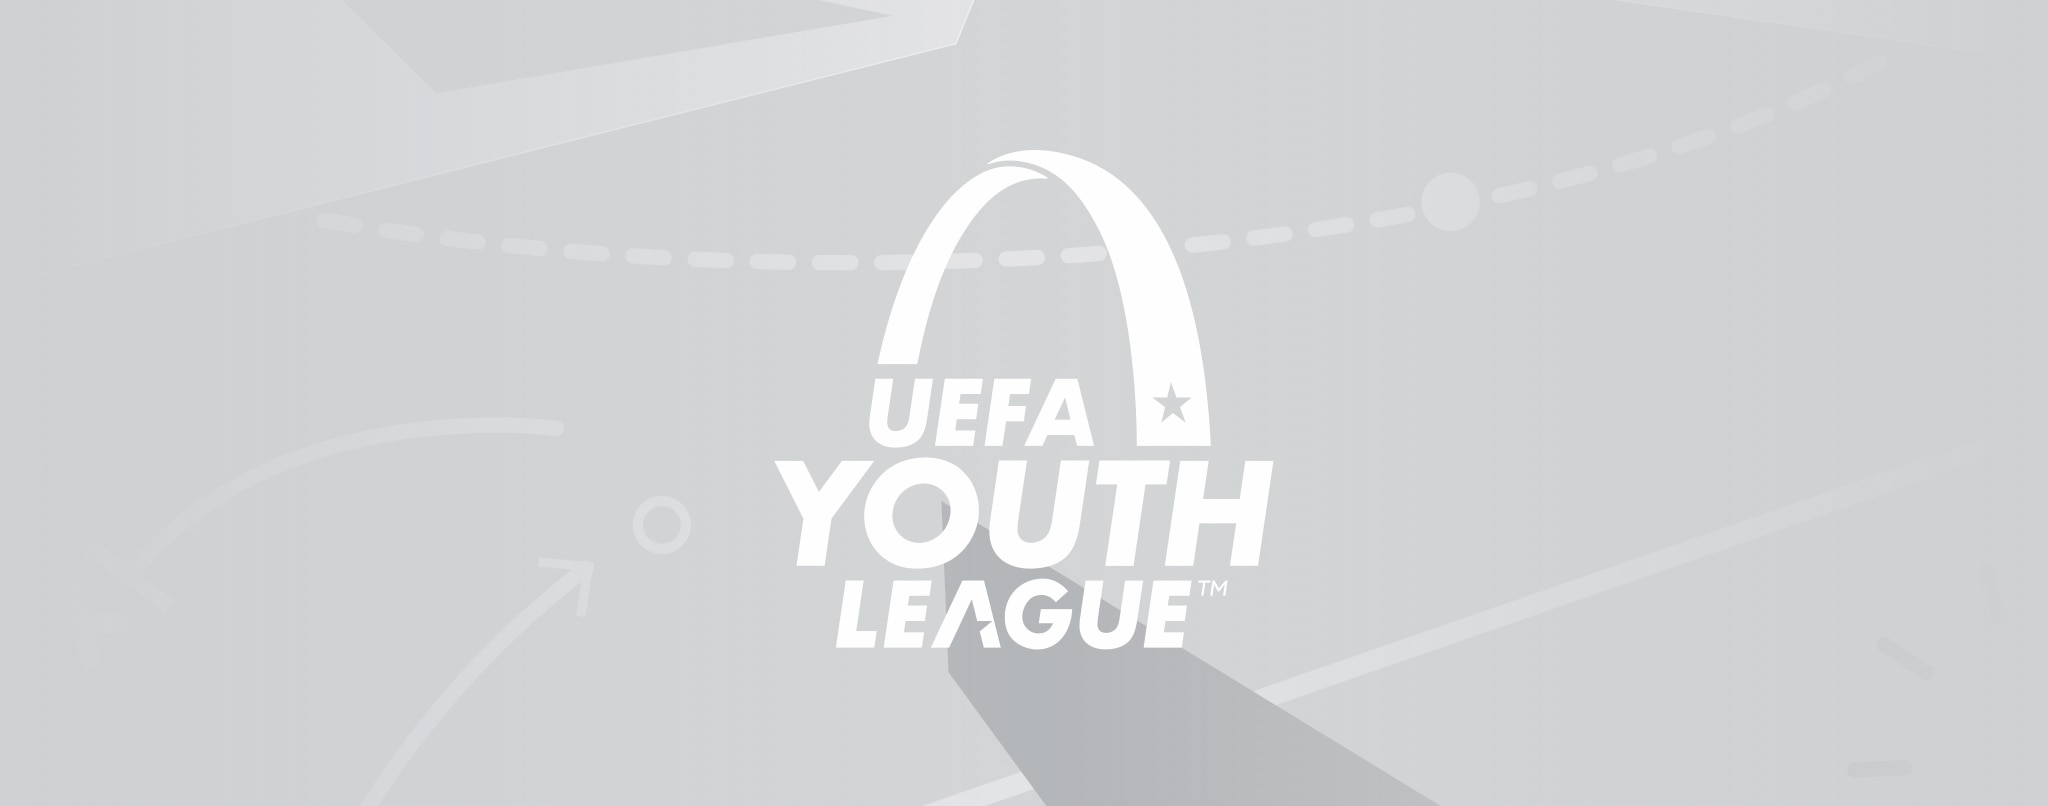 Porto vence Youth League